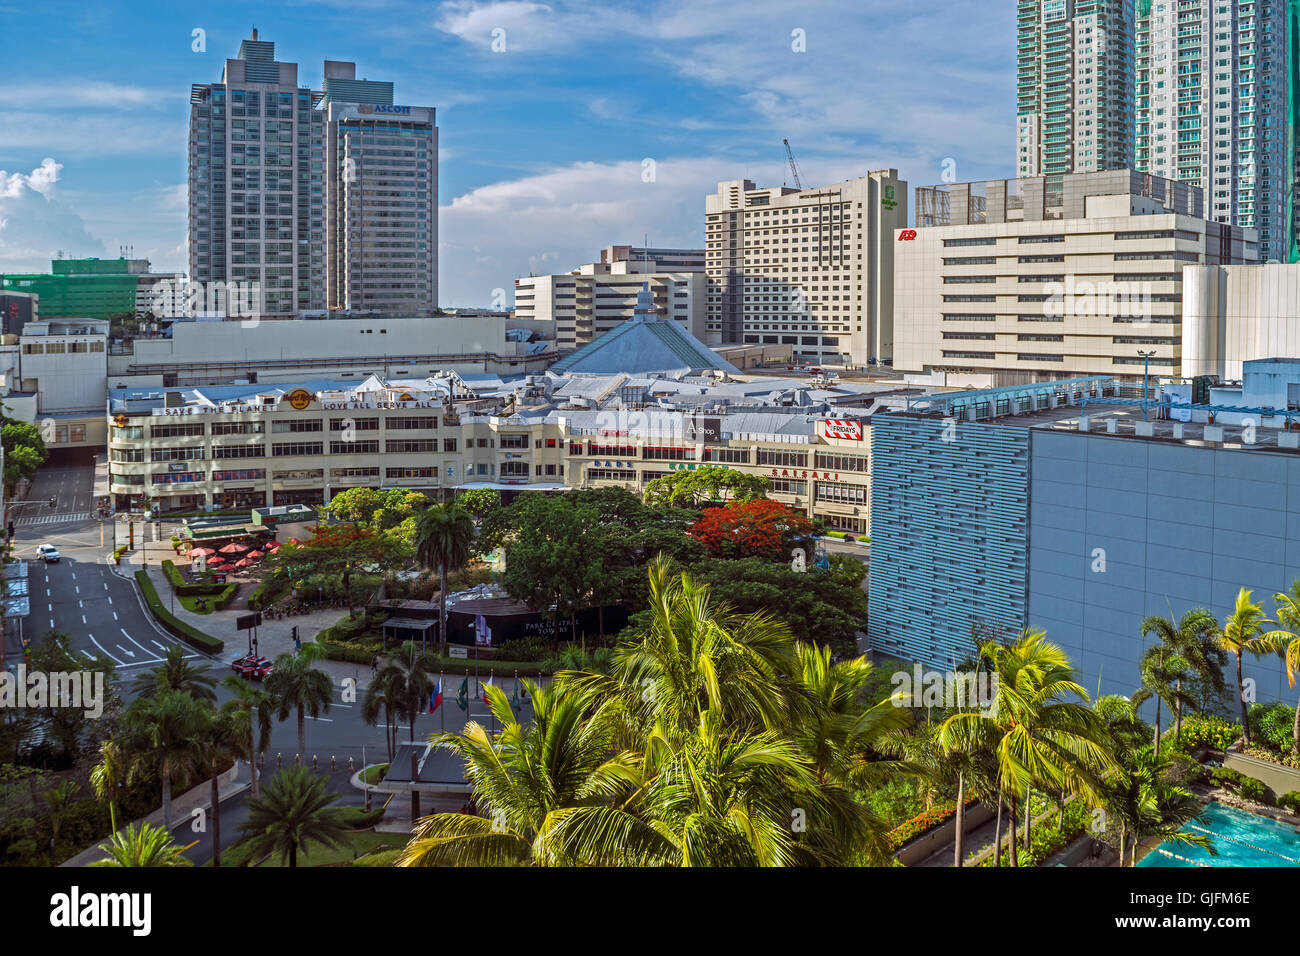 Overview Makati, Metro Manila, The Philippines - Stock Image